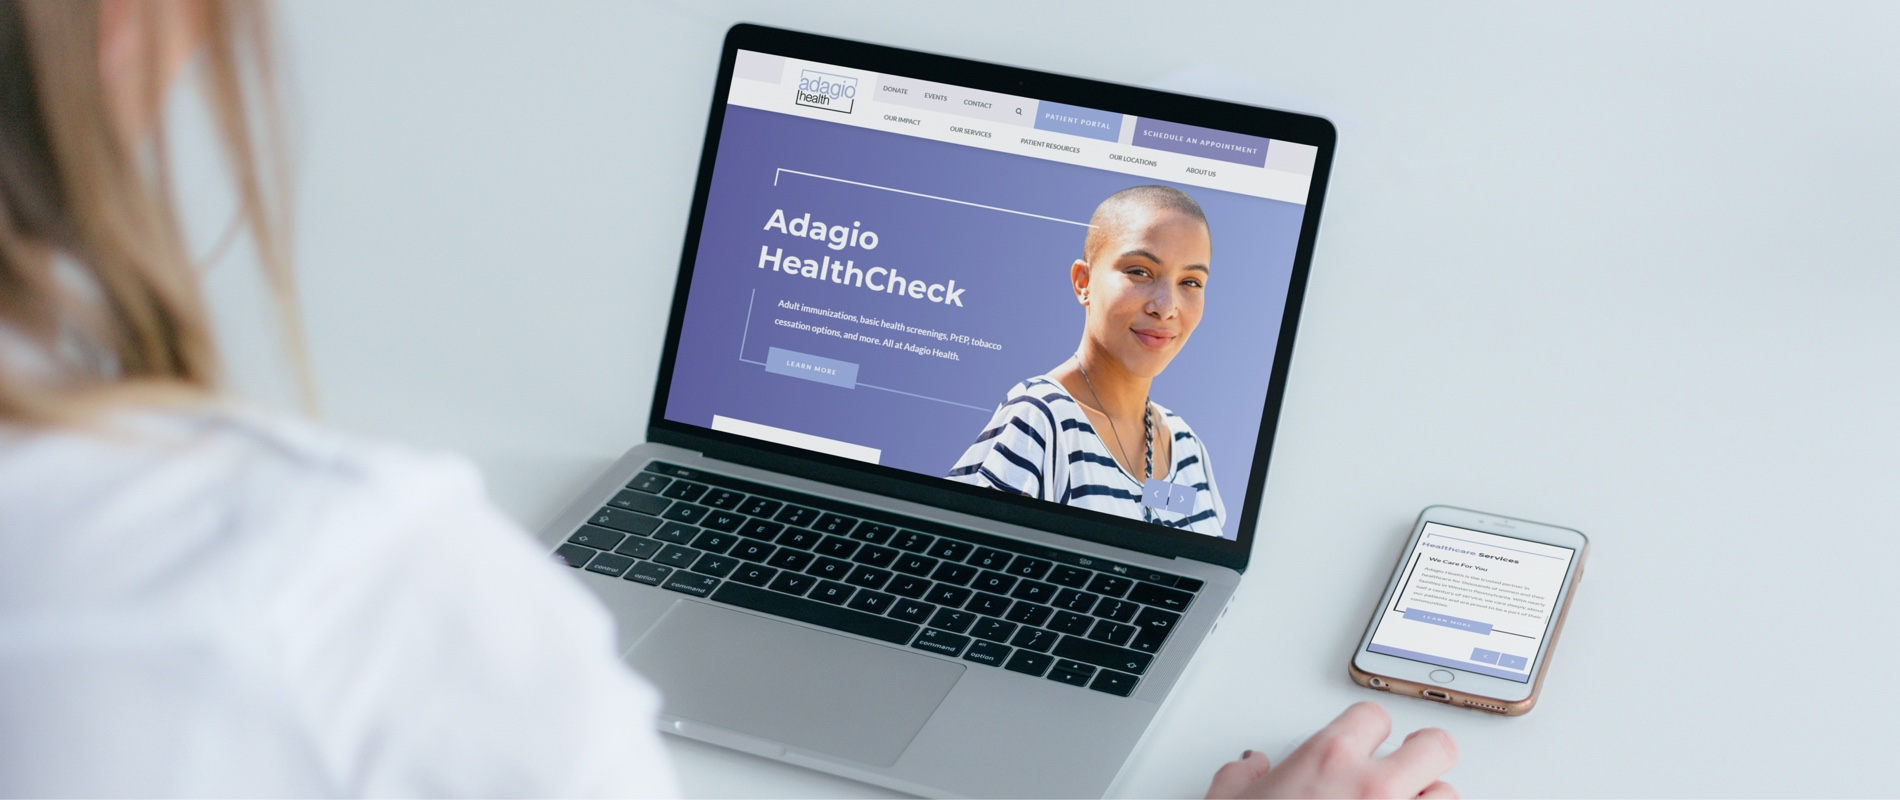 adagio health homepage on a computer screen